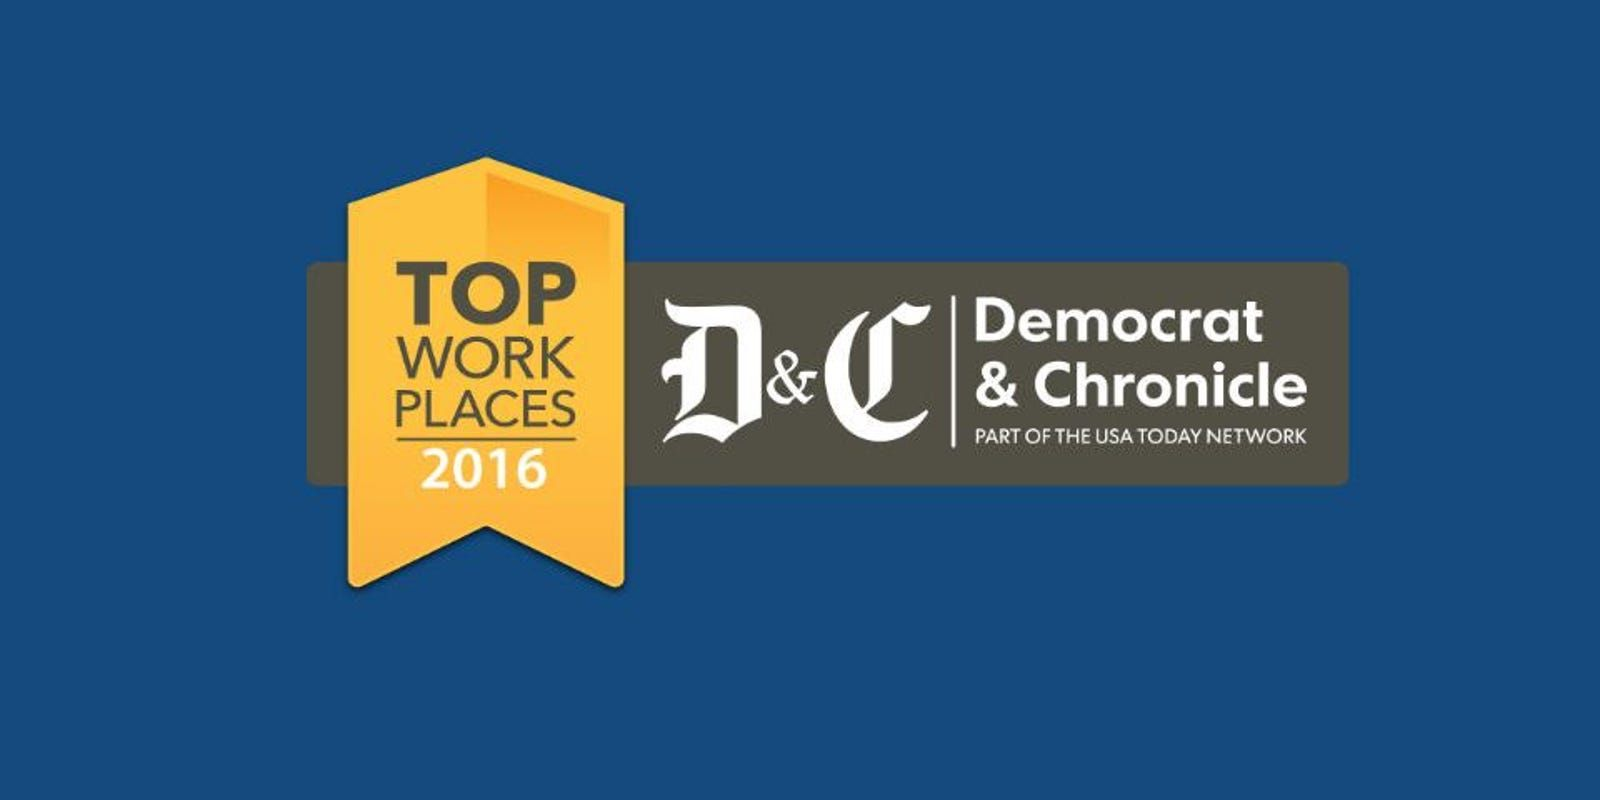 D & C Top Workplaces of 2016 award